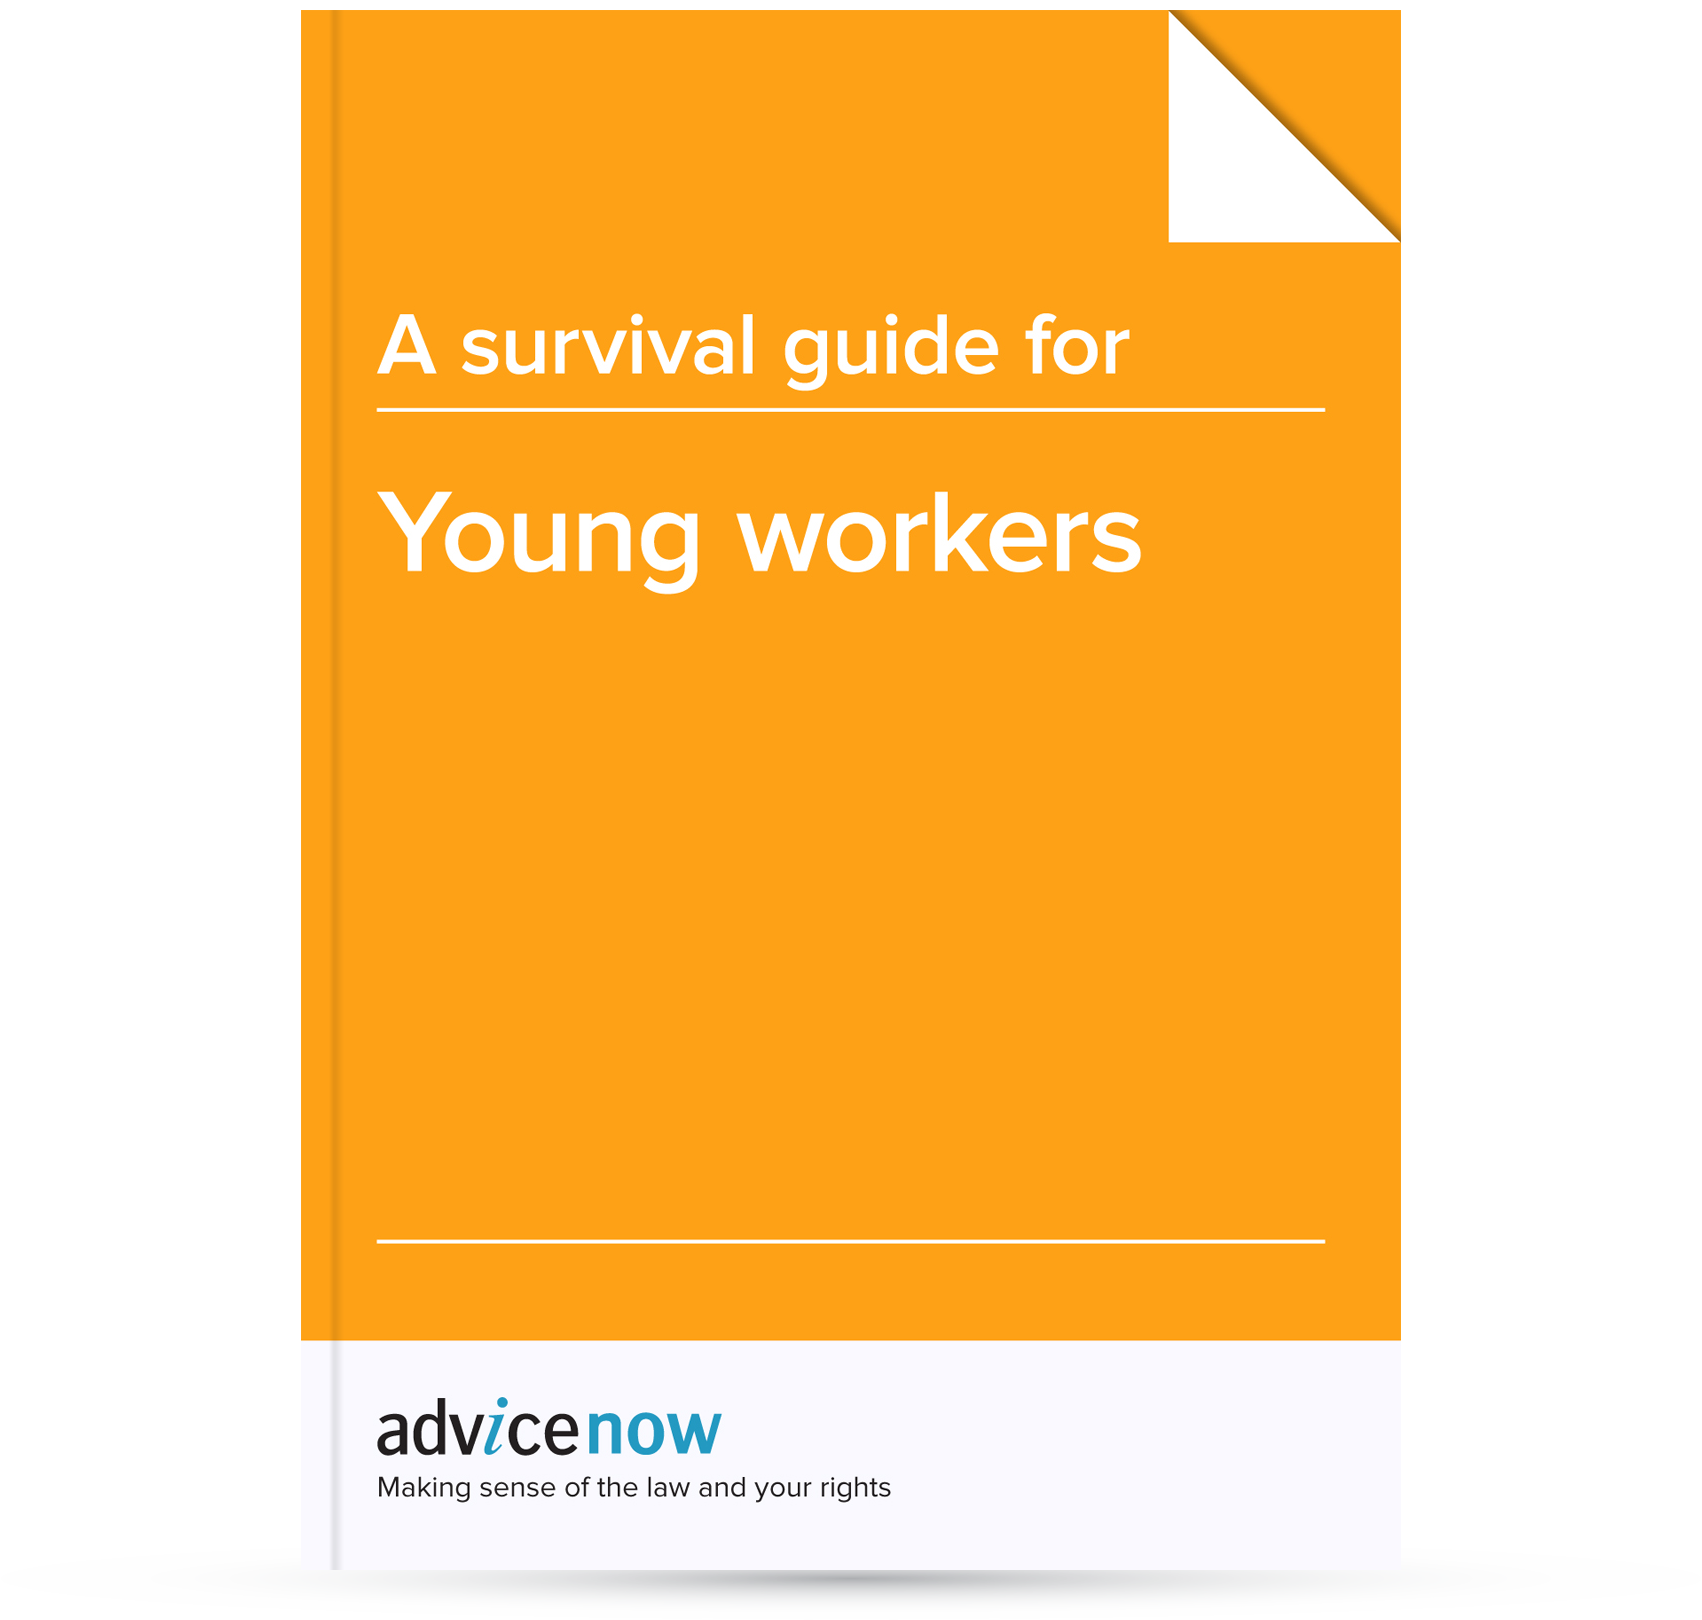 a guide for young workers Federal resources - us department of labor, wage and hour division the us department of labor's wage and hour division assists teens, parents, employers and educators in understanding federal and state rules concerning young workers through its youth rules website, which offers these resources: employer's pocket guide to youth employment.